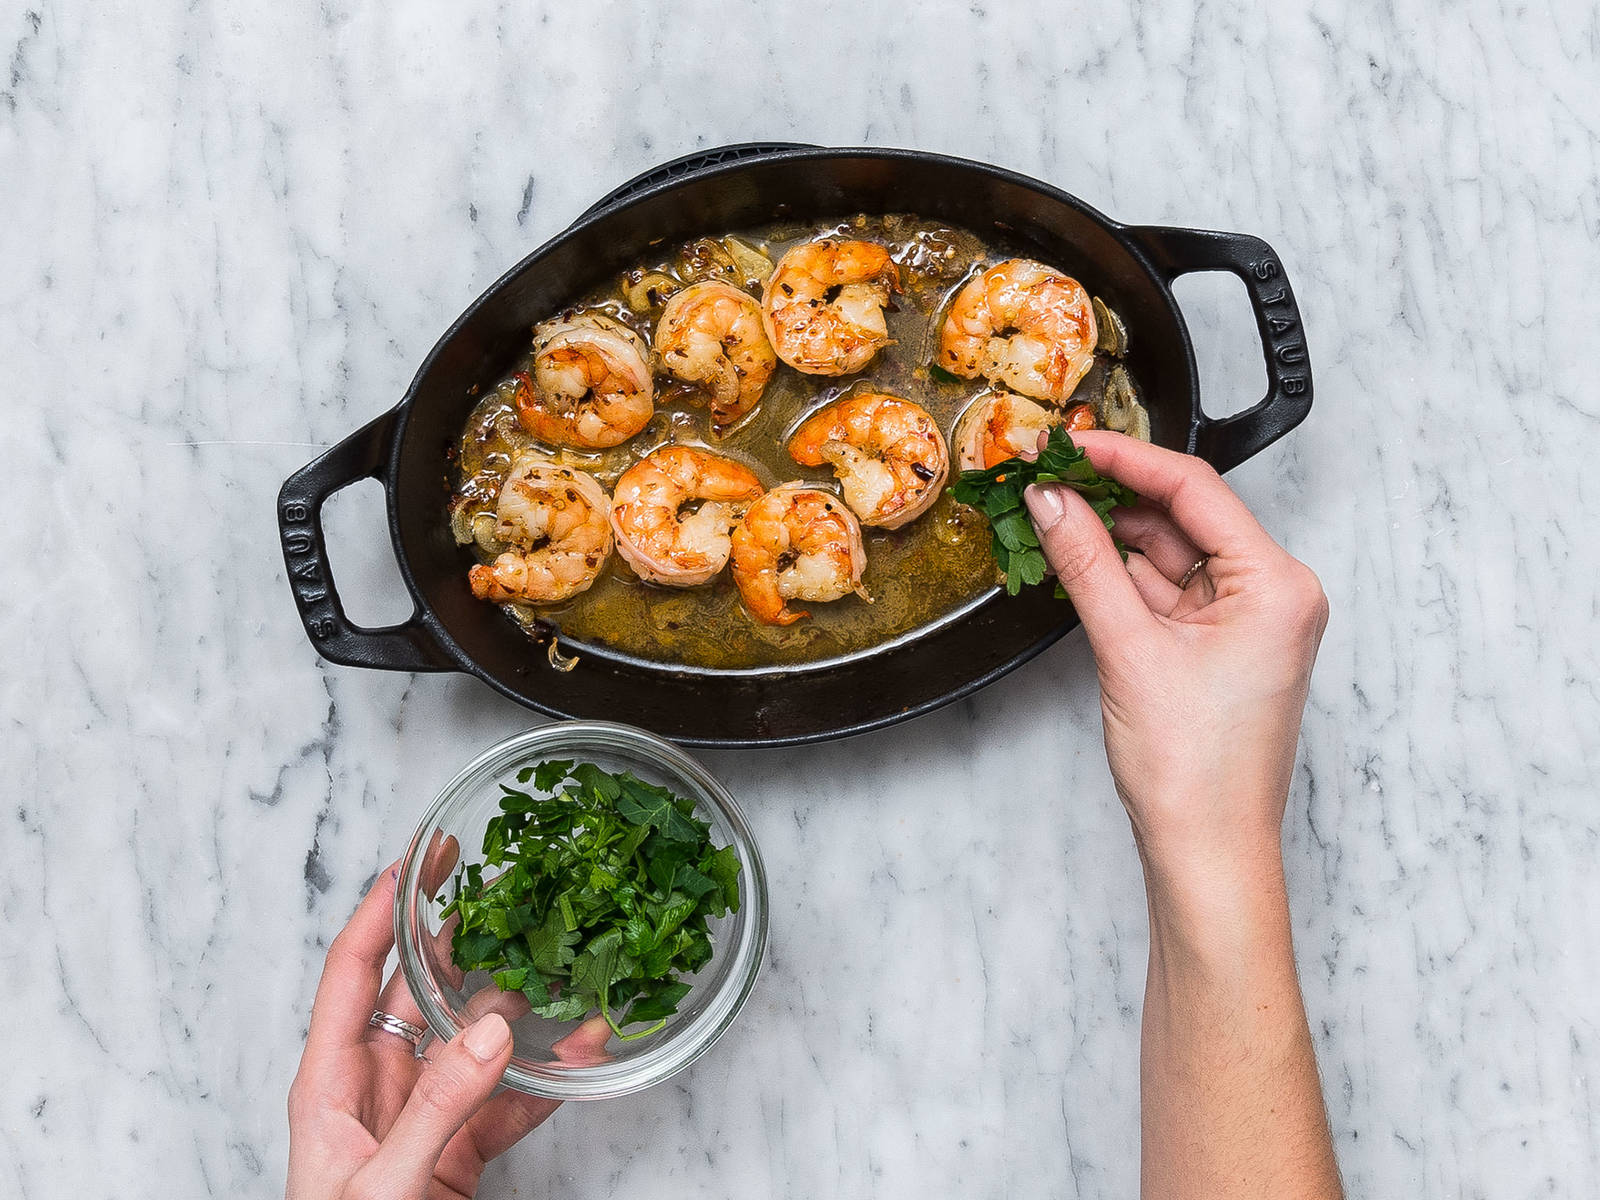 Add white wine to pan with shrimp and cook for approx. 1 – 2 min. more over medium heat. Remove from heat and sprinkle with chopped parsley and salt. Served with toasted baguette slices. Enjoy!